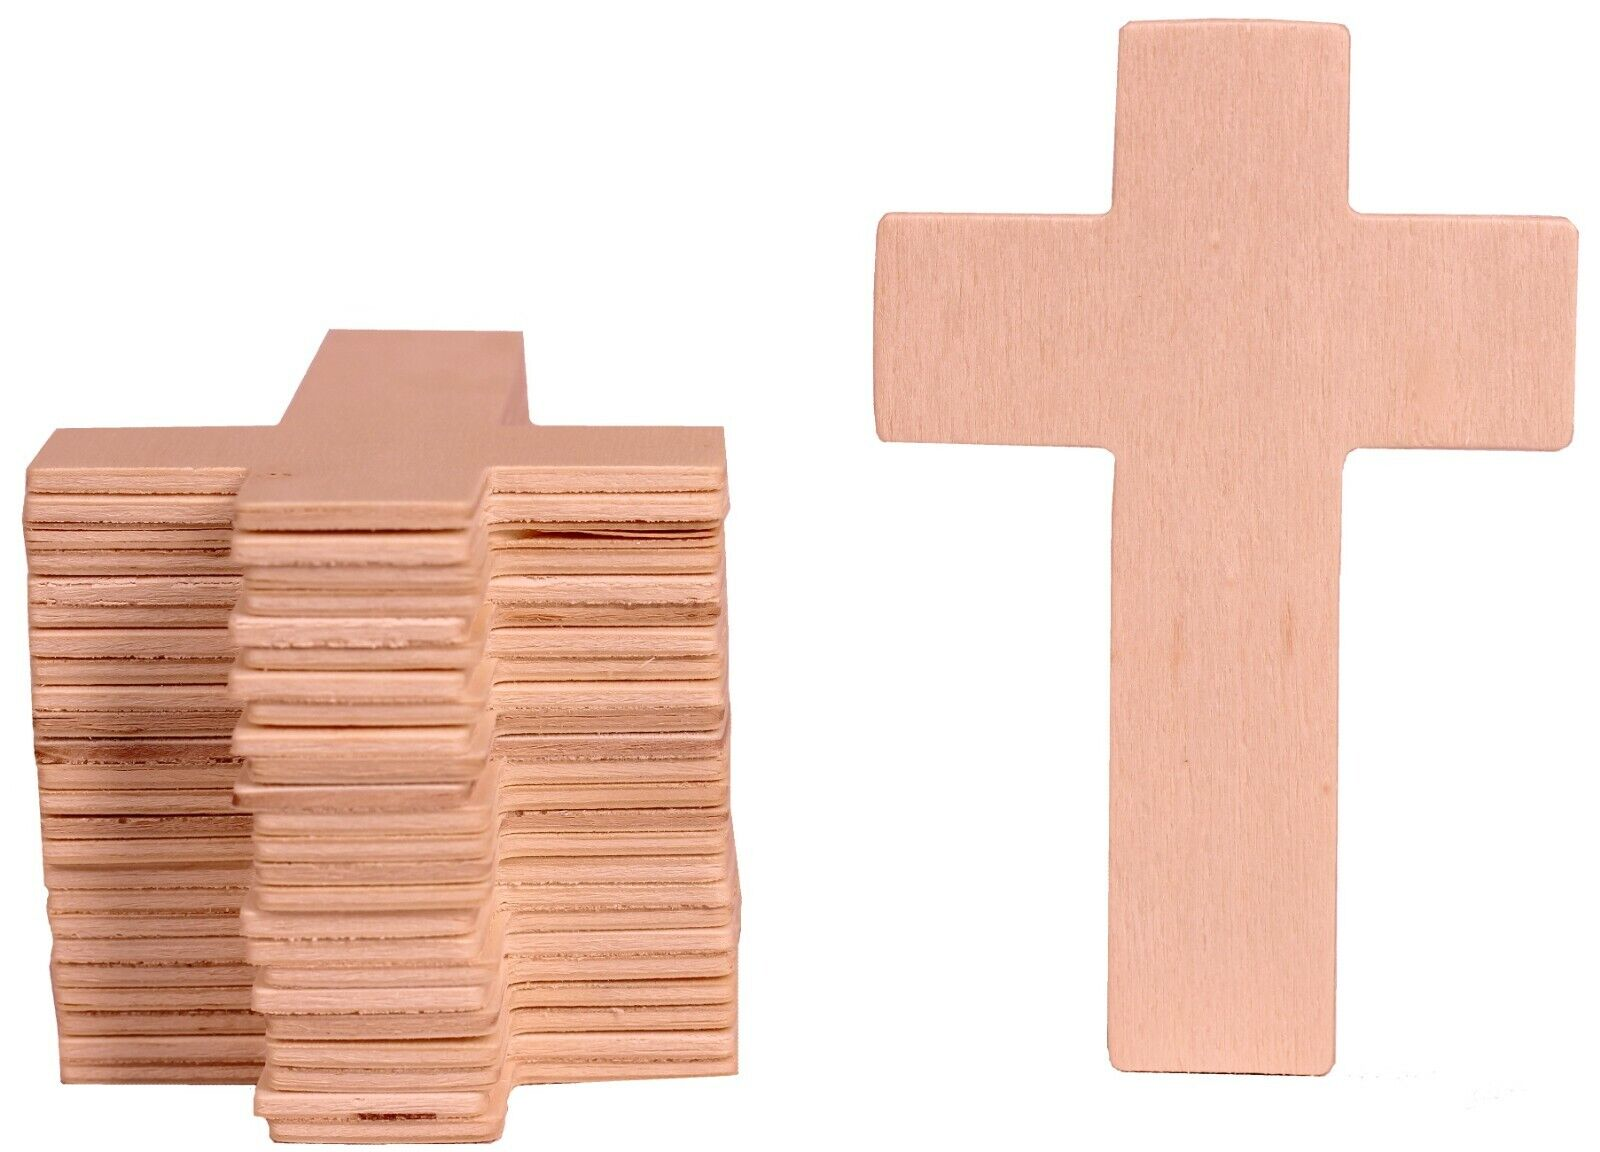 100 pack -Unfinished Wood Cross Shape Cutout Slices, 4.25 Inch, Wooden Craft DIY Crafting Pieces